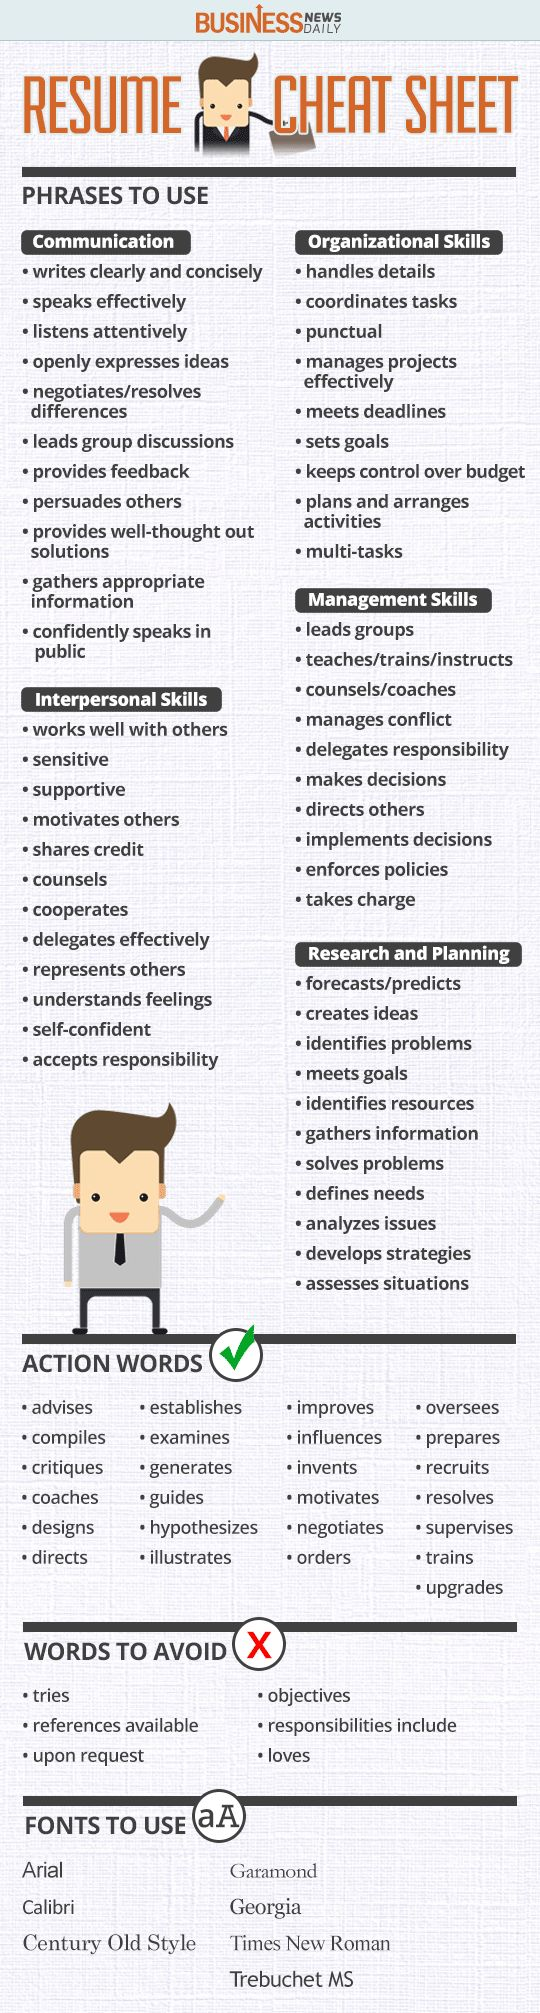 Opposenewapstandardsus  Pleasing  Ideas About Resume On Pinterest  Cv Format Resume Cv And  With Marvelous Resume Cheat Sheet Infographic Andrews Almost Done With A Complete Unit On Employment Which With Amusing Resume For Marketing Also Font For A Resume In Addition Most Effective Resume Format And Job Description On Resume As Well As Fire Chief Resume Additionally Graduate Assistant Resume From Pinterestcom With Opposenewapstandardsus  Marvelous  Ideas About Resume On Pinterest  Cv Format Resume Cv And  With Amusing Resume Cheat Sheet Infographic Andrews Almost Done With A Complete Unit On Employment Which And Pleasing Resume For Marketing Also Font For A Resume In Addition Most Effective Resume Format From Pinterestcom